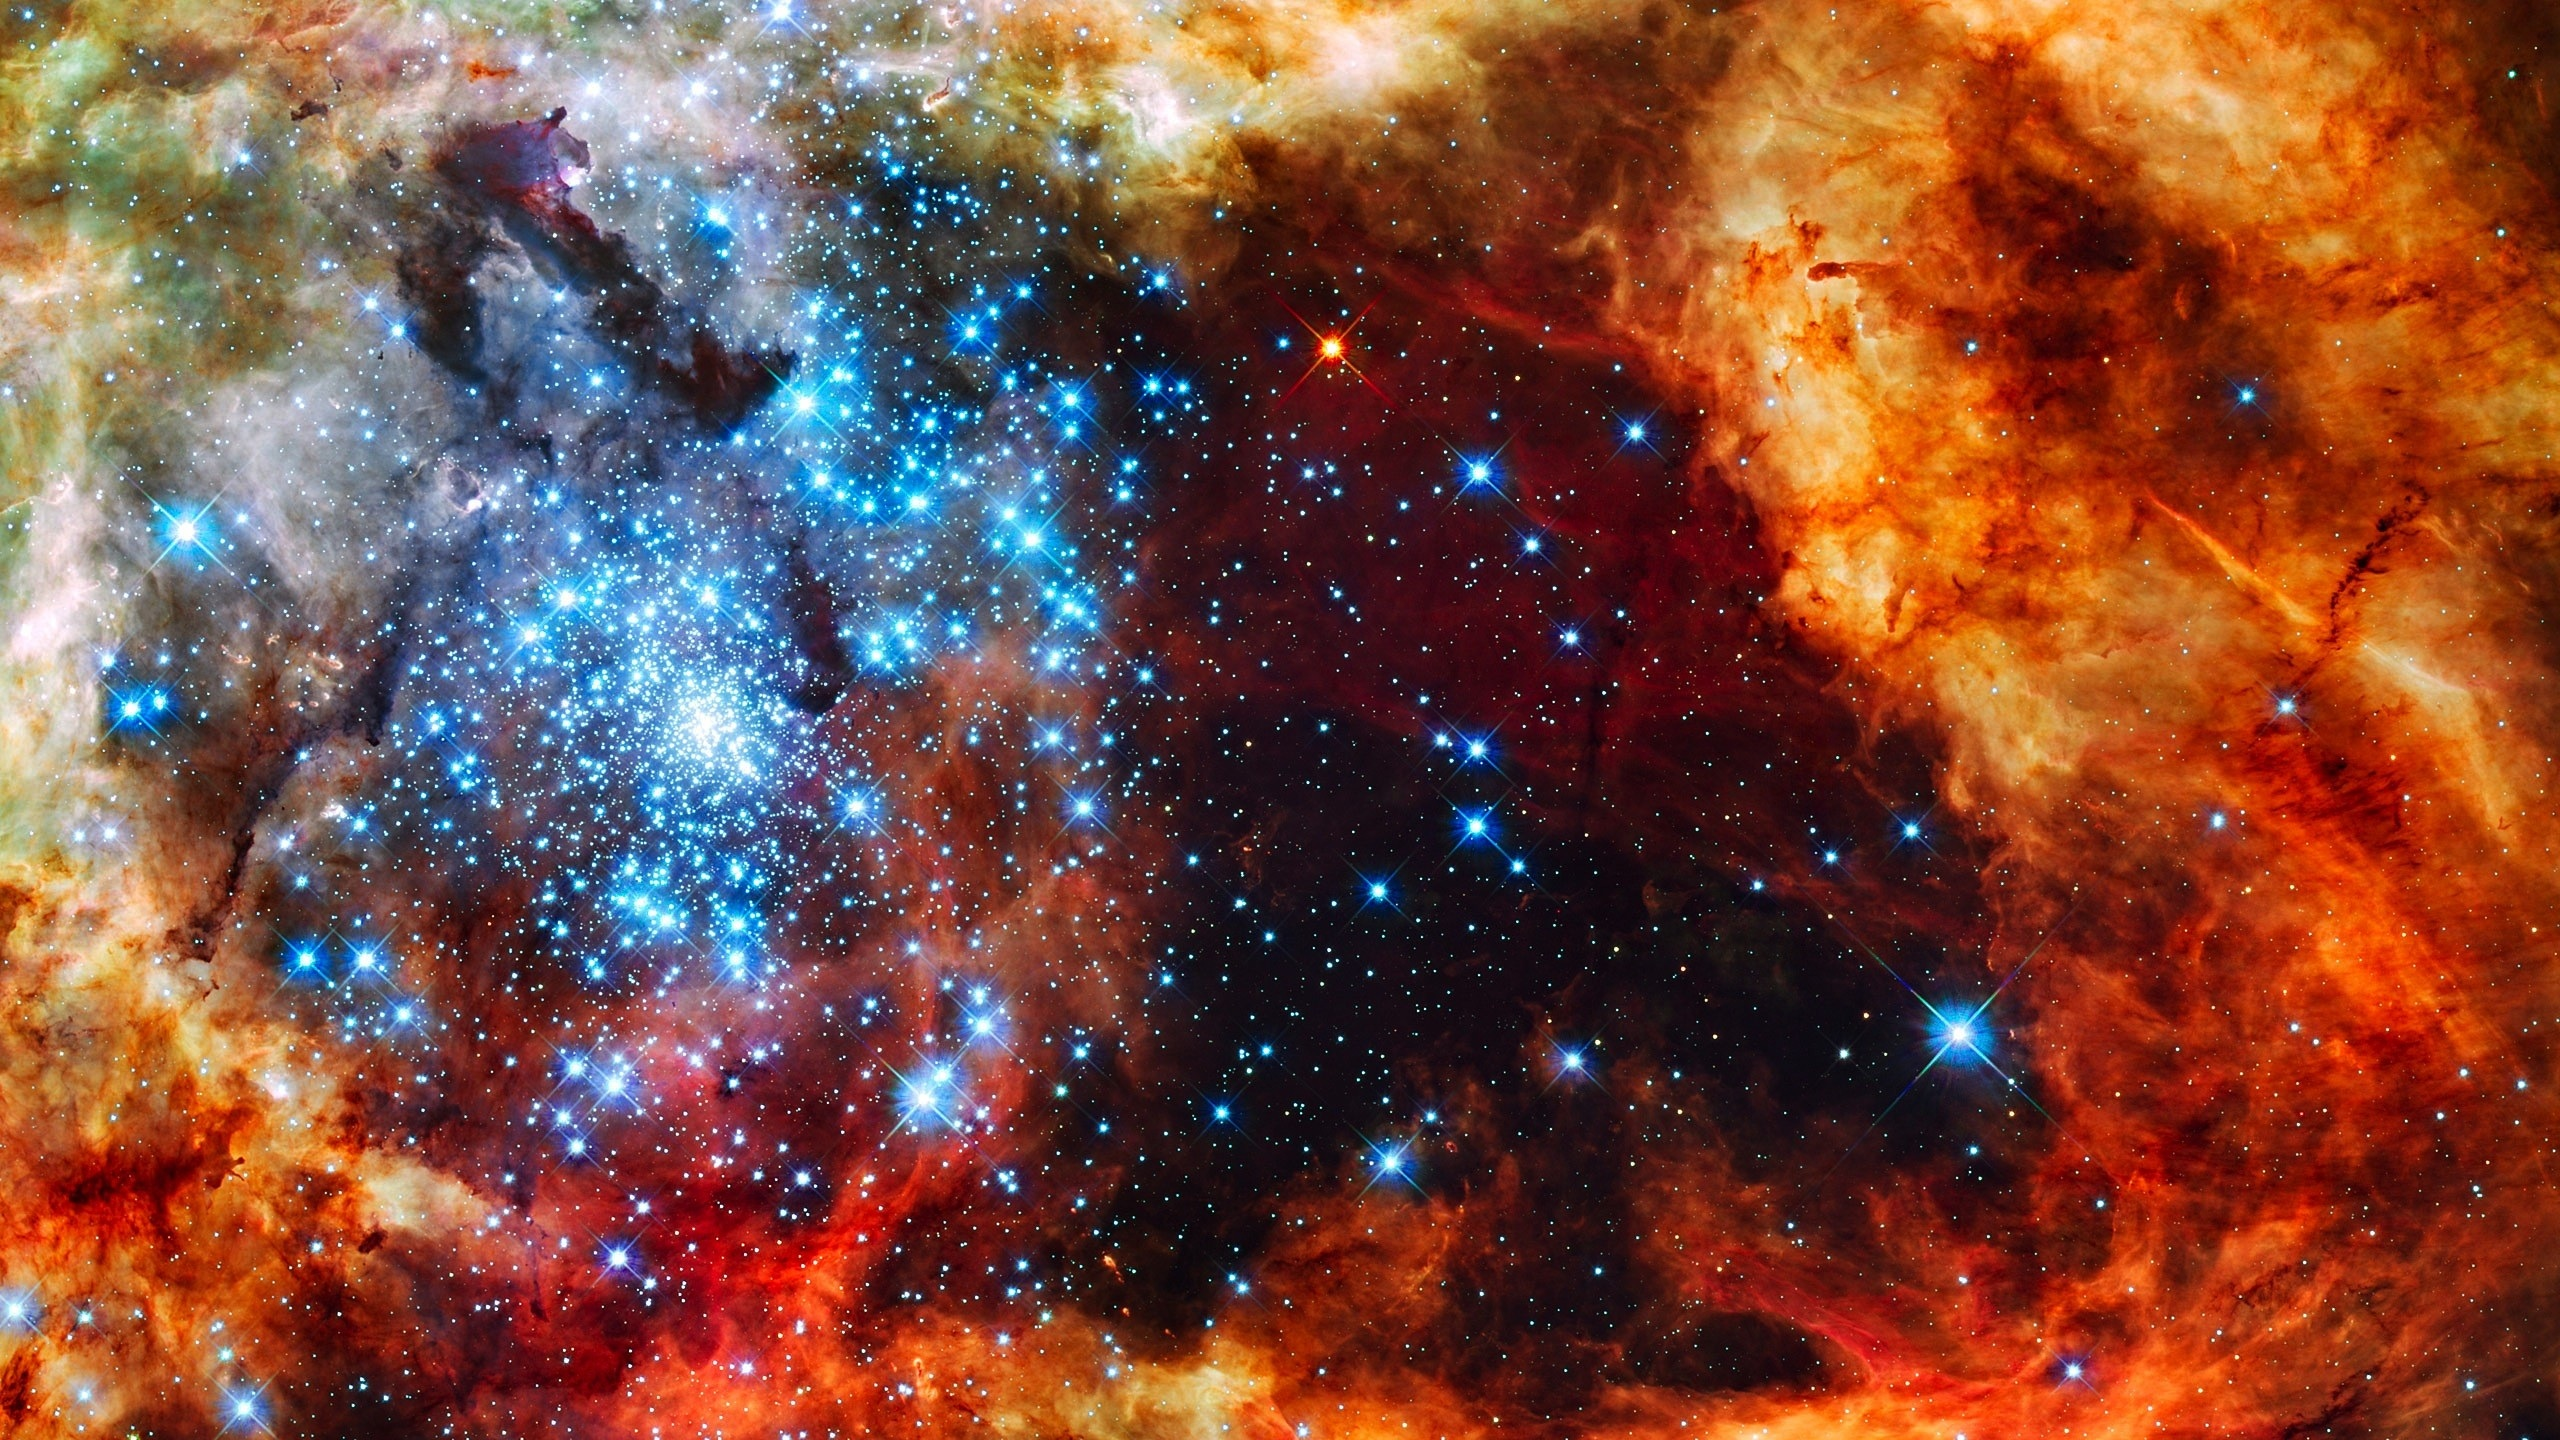 Wallpaper Starry Space 2560x1440 QHD Picture, Image